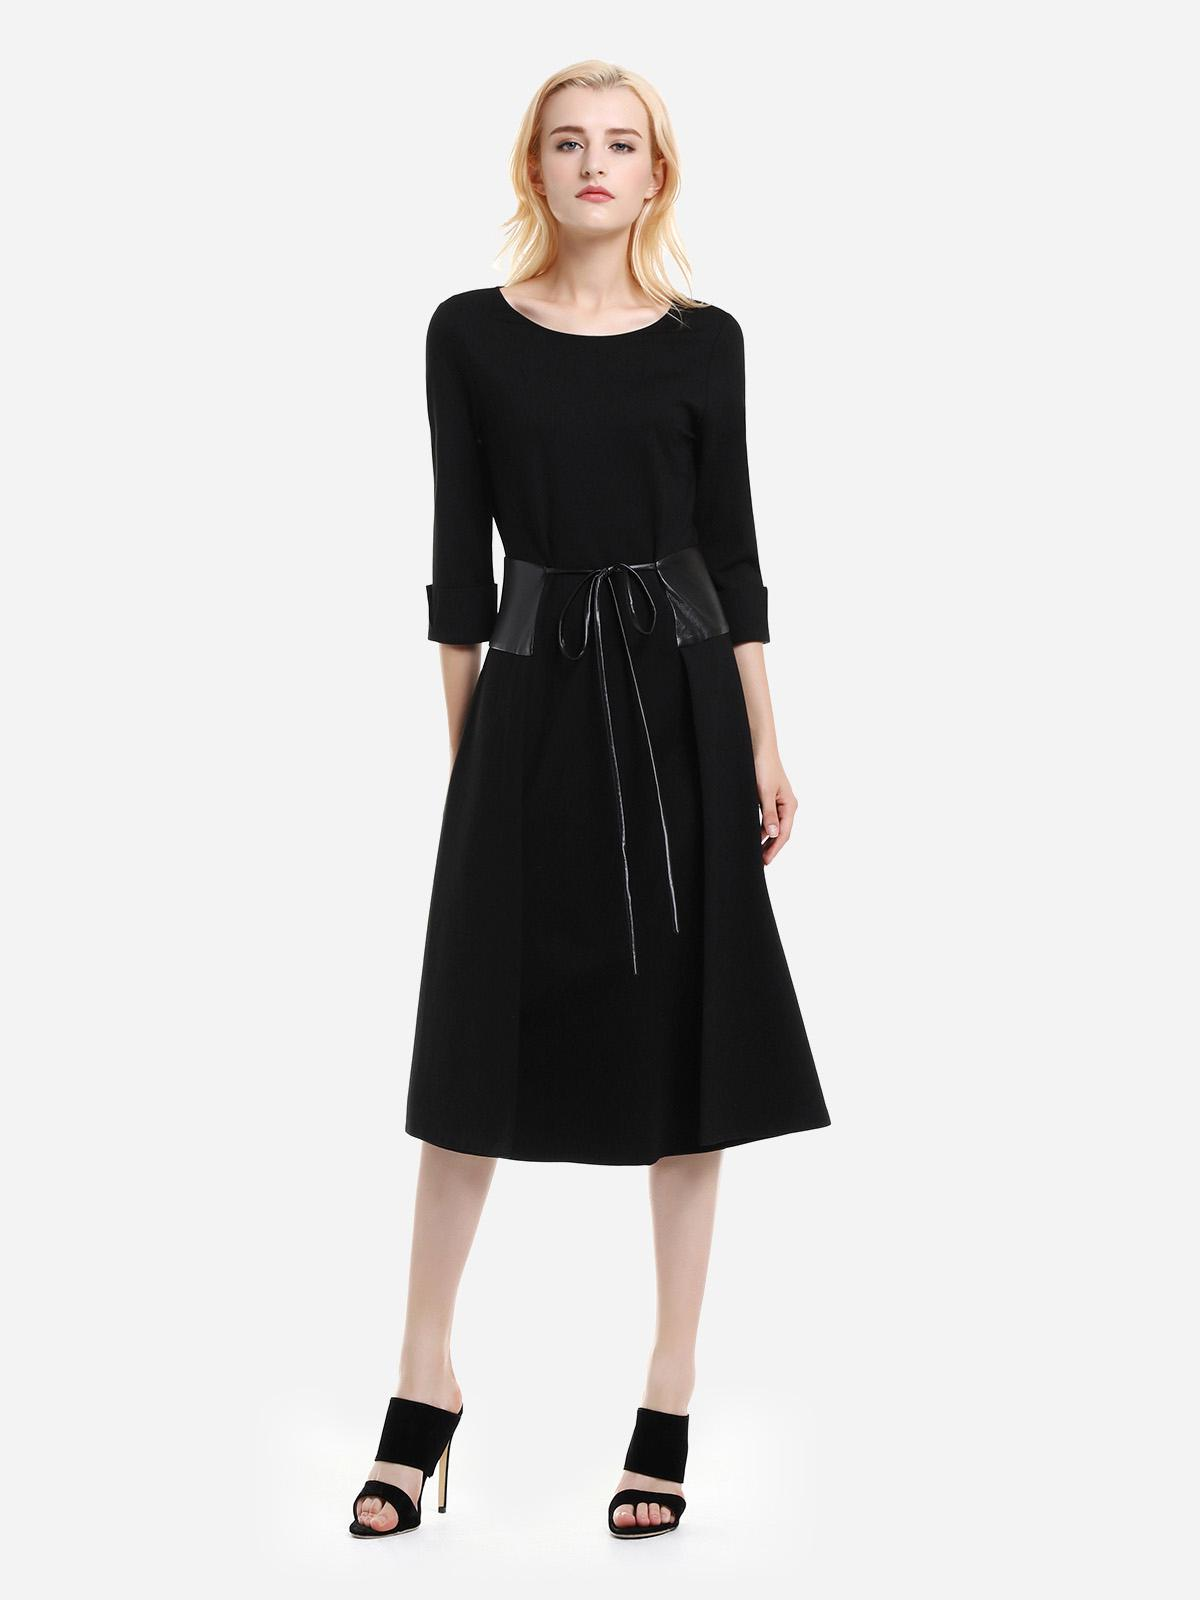 ZAN.STYLE Below the Knee Long Sleeve Dress